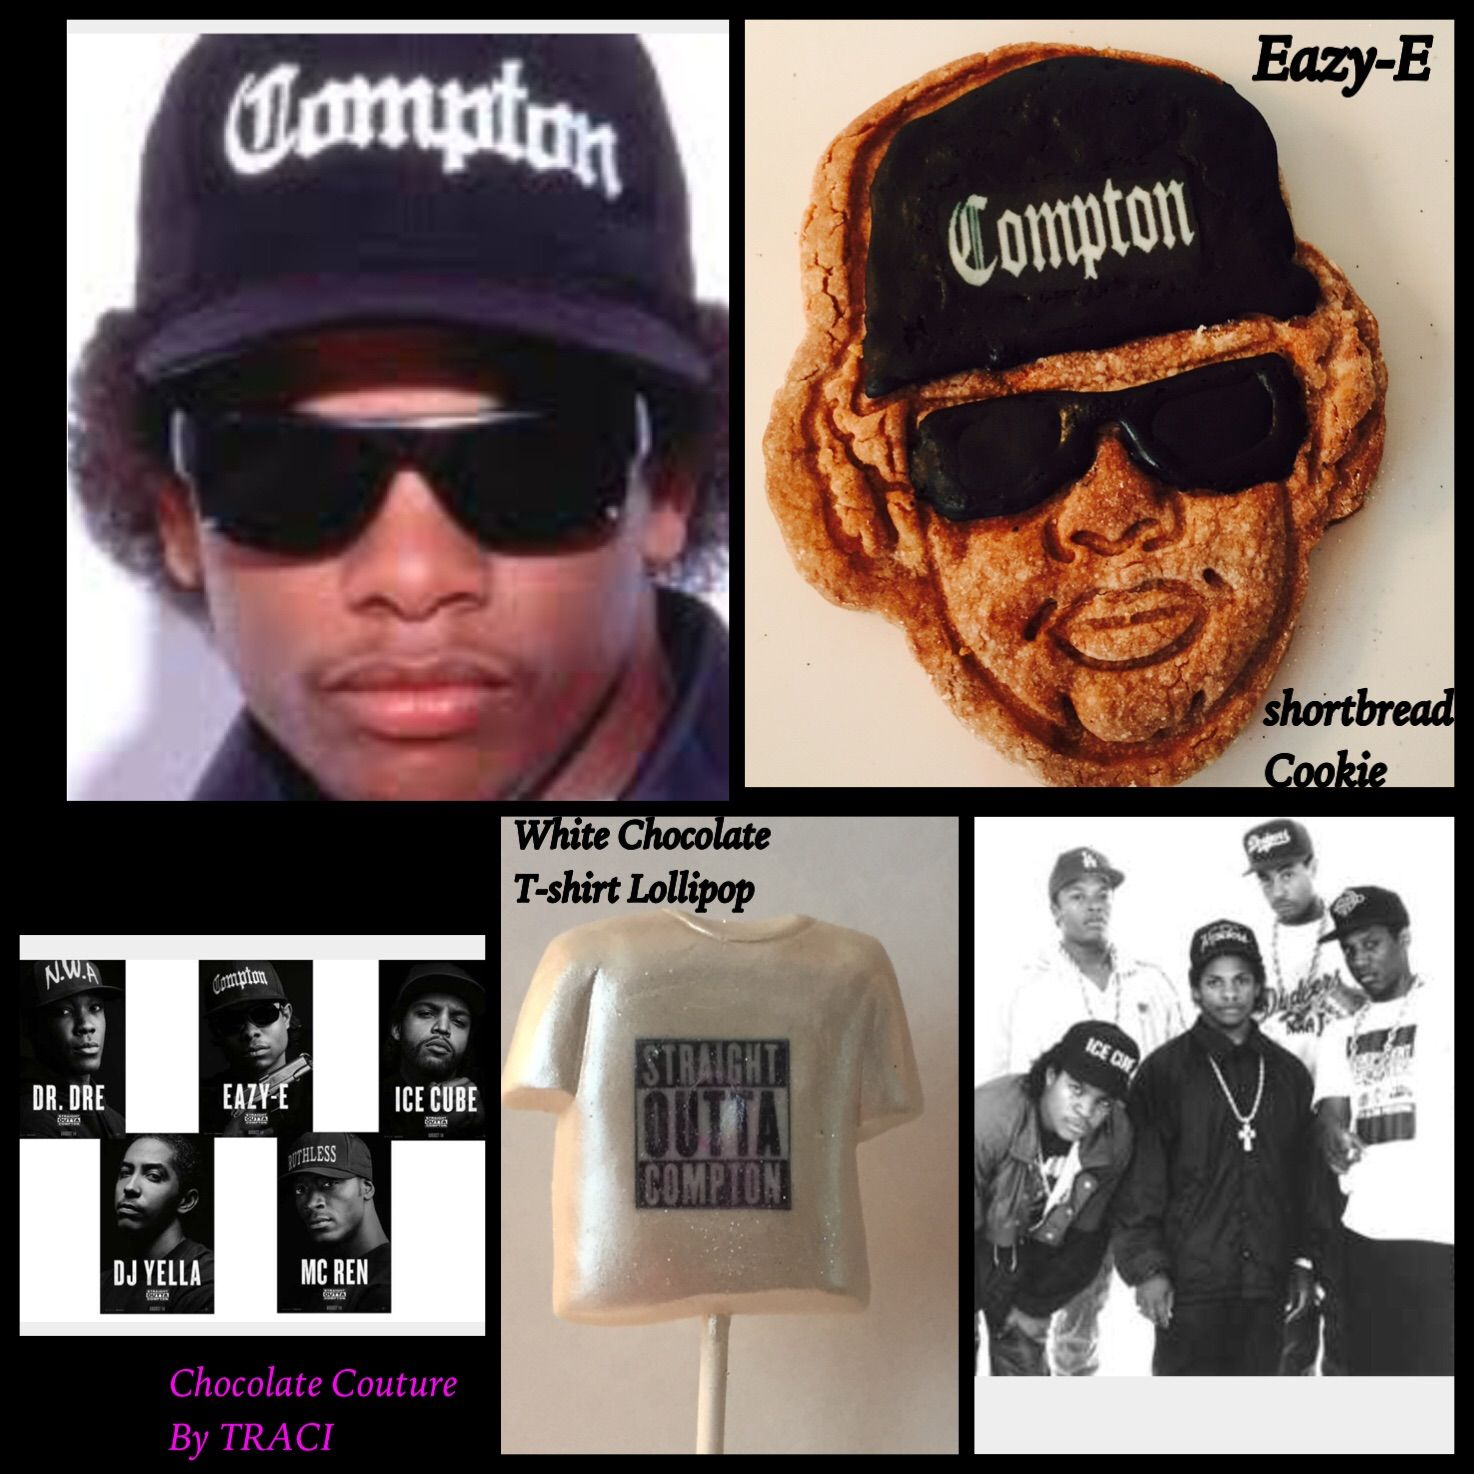 Chocolate Couture by Traci Straight Outta pton order Eazy E